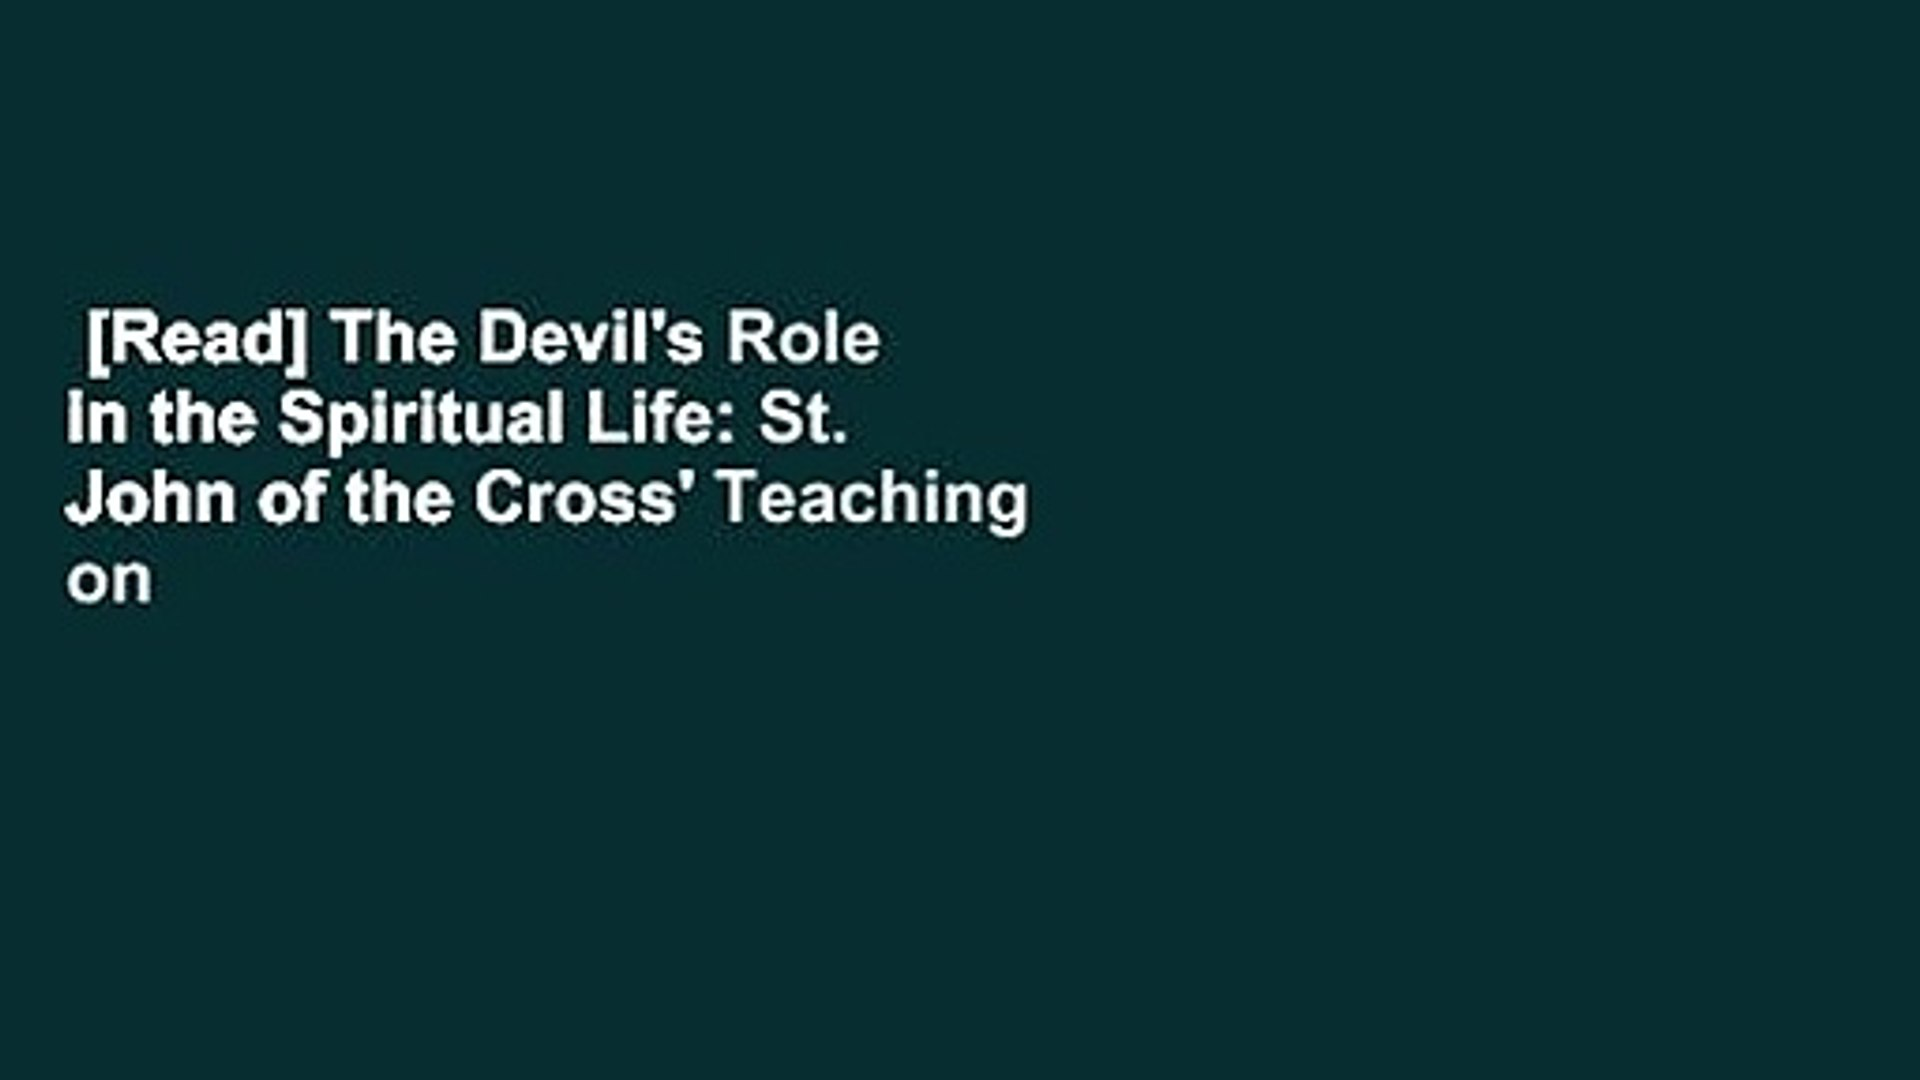 [Read] The Devil's Role in the Spiritual Life: St. John of the Cross' Teaching on Satan